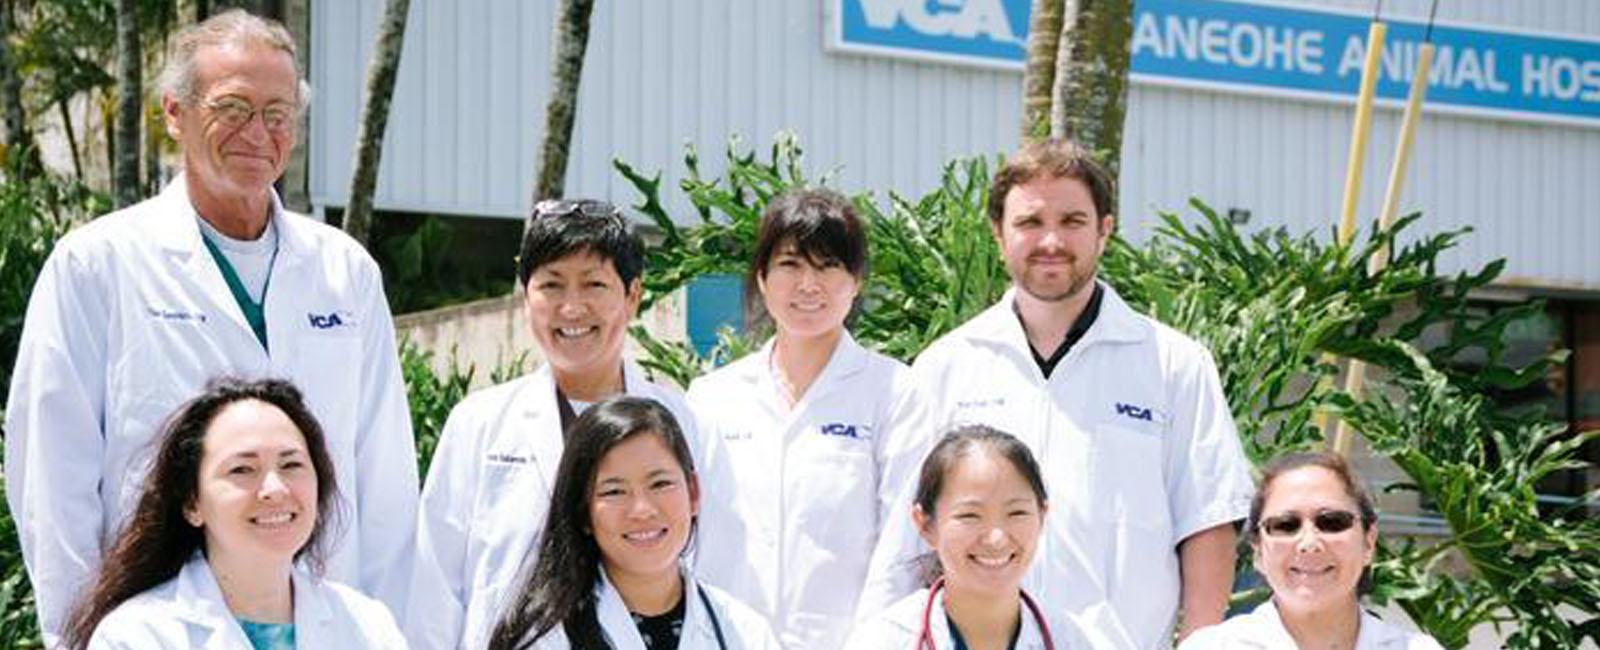 Homepage Team Picture of VCA Kaneohe Animal Hospital